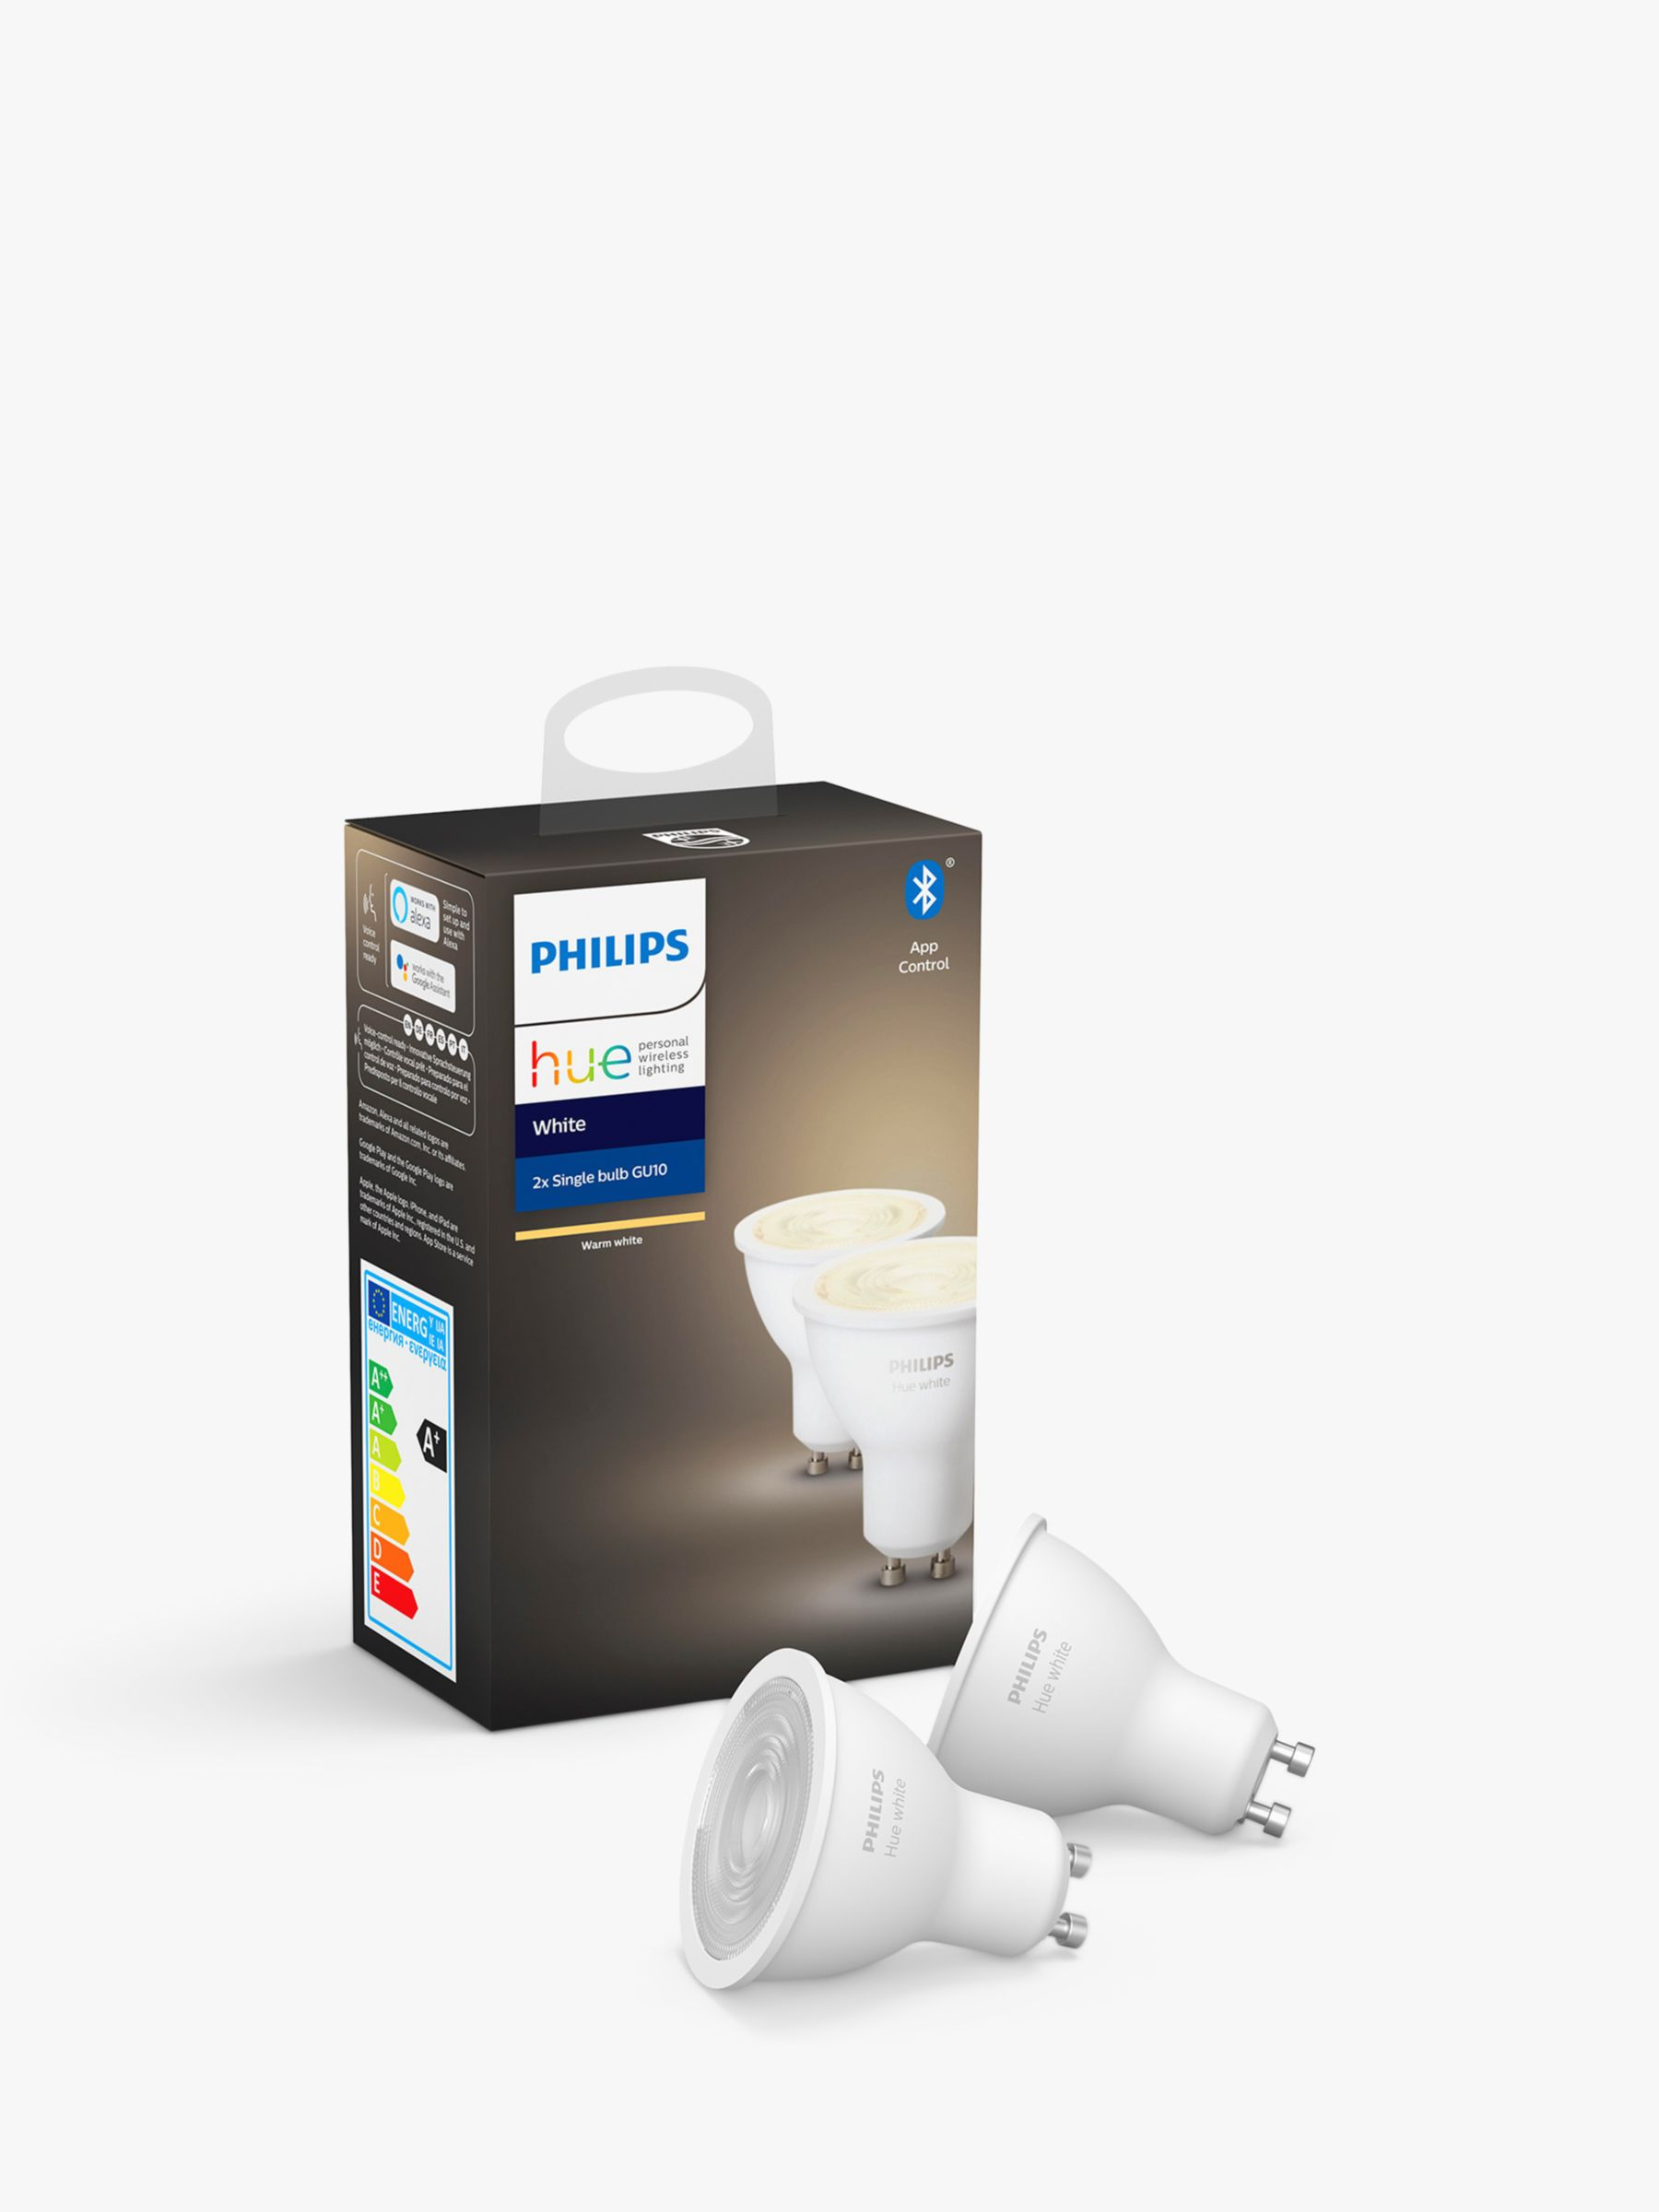 Philips Philips Hue White Wireless Lighting LED Light Bulb with Bluetooth, 5.2W GU10 Bulb, Pack of 2